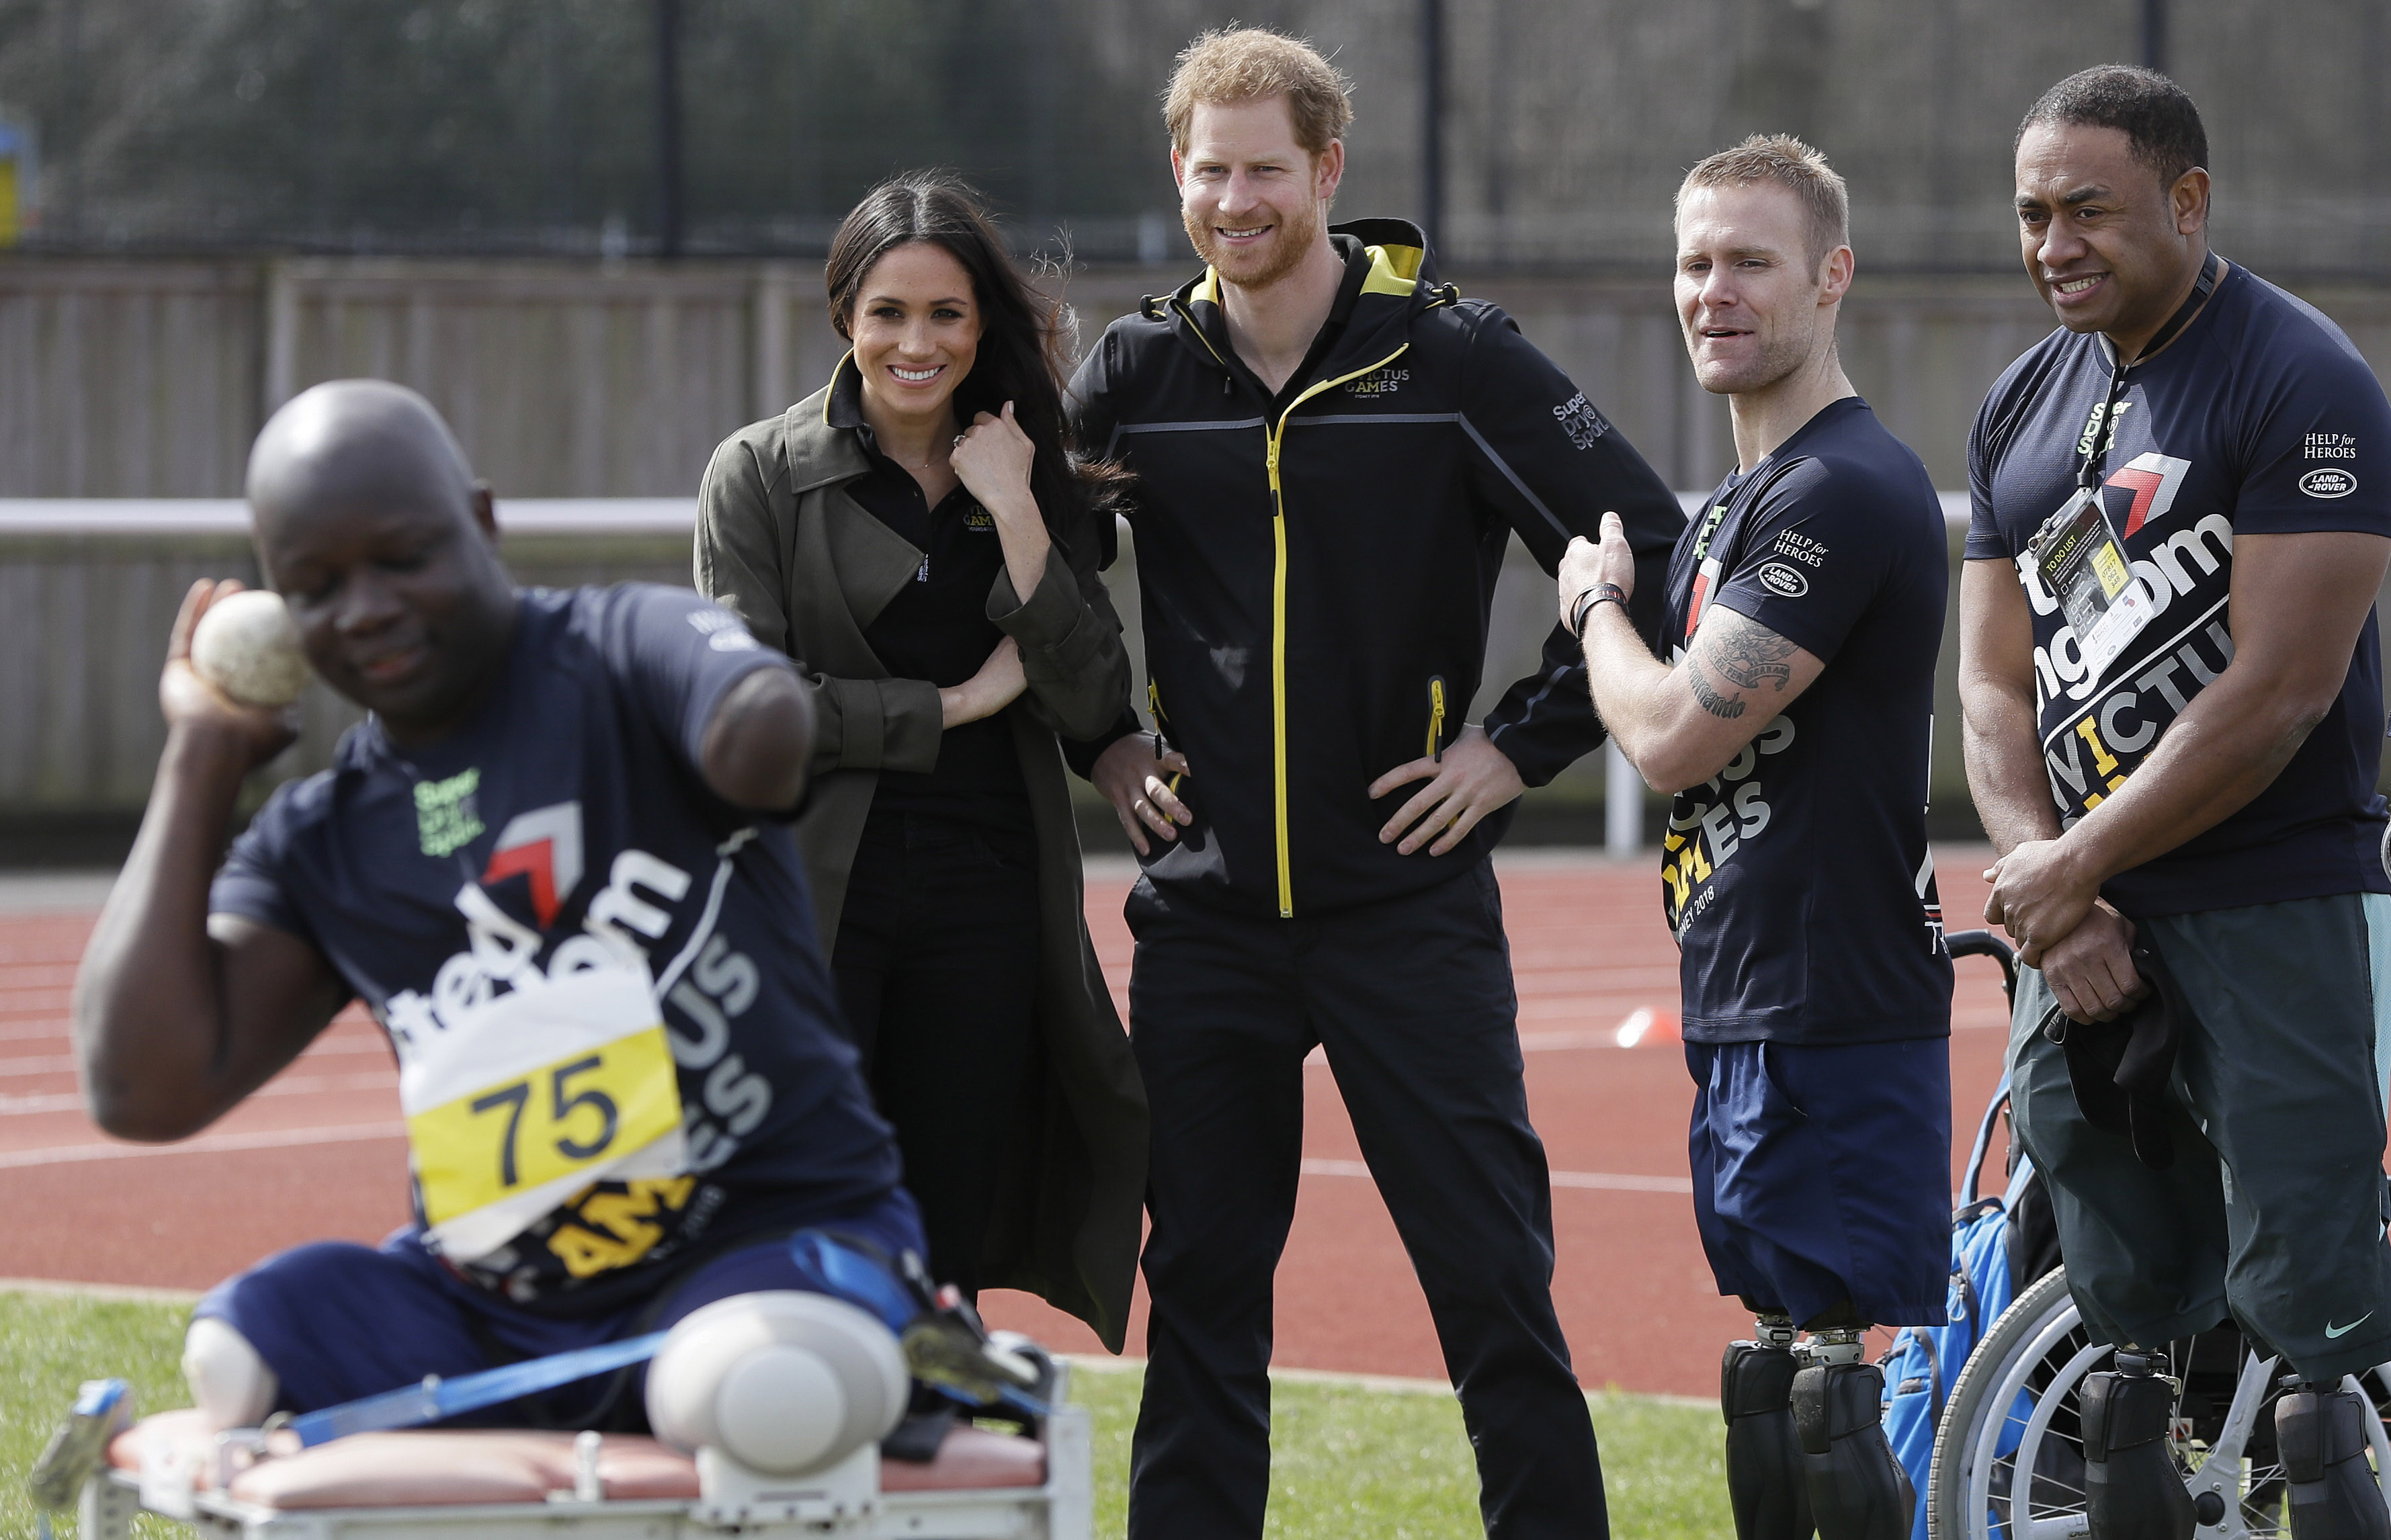 Invictus Games 2020.Superdry Announced As An Official Supporter Of The Invictus